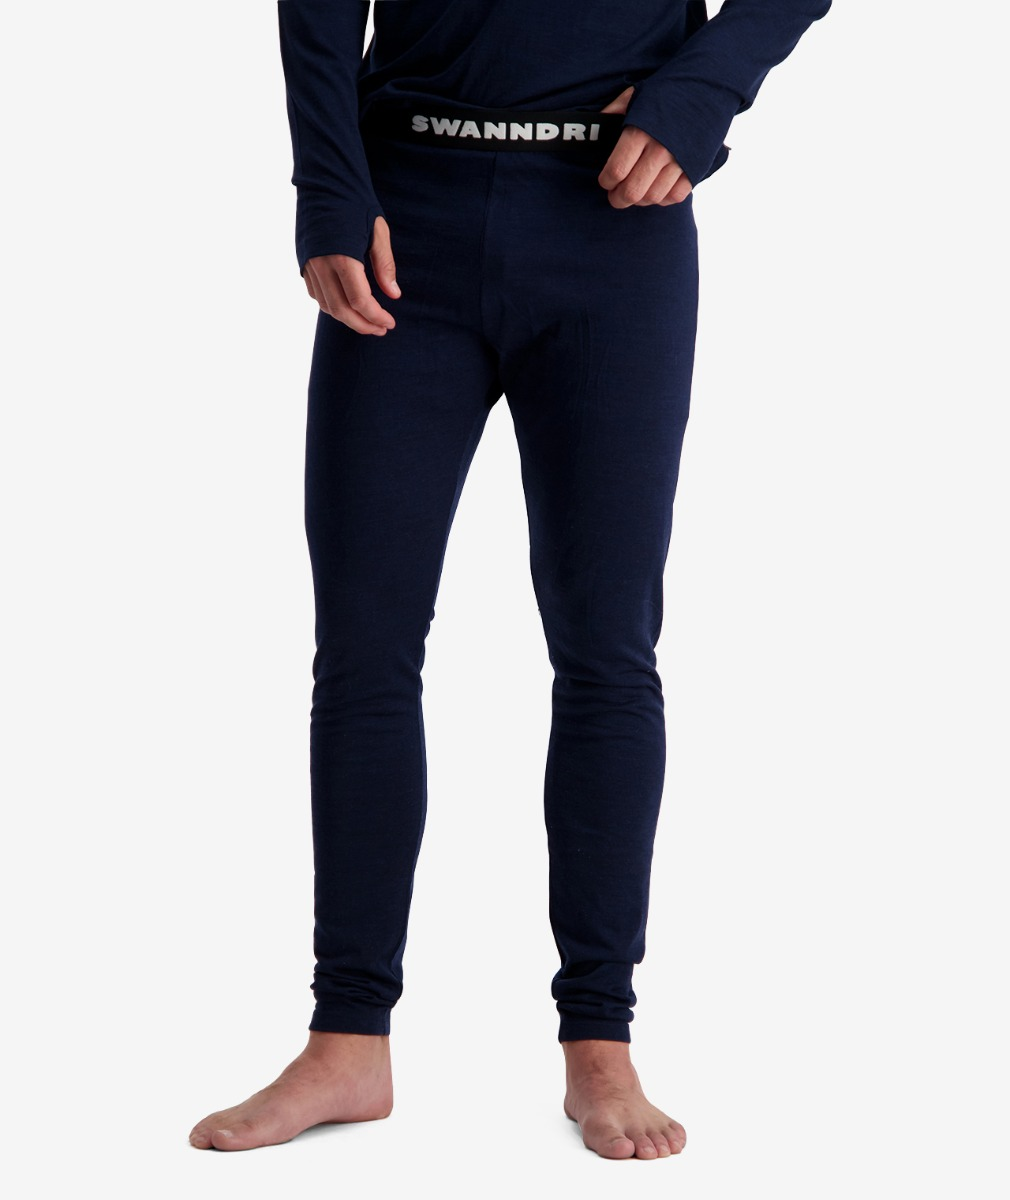 Swanndri Men's Merino Leggings